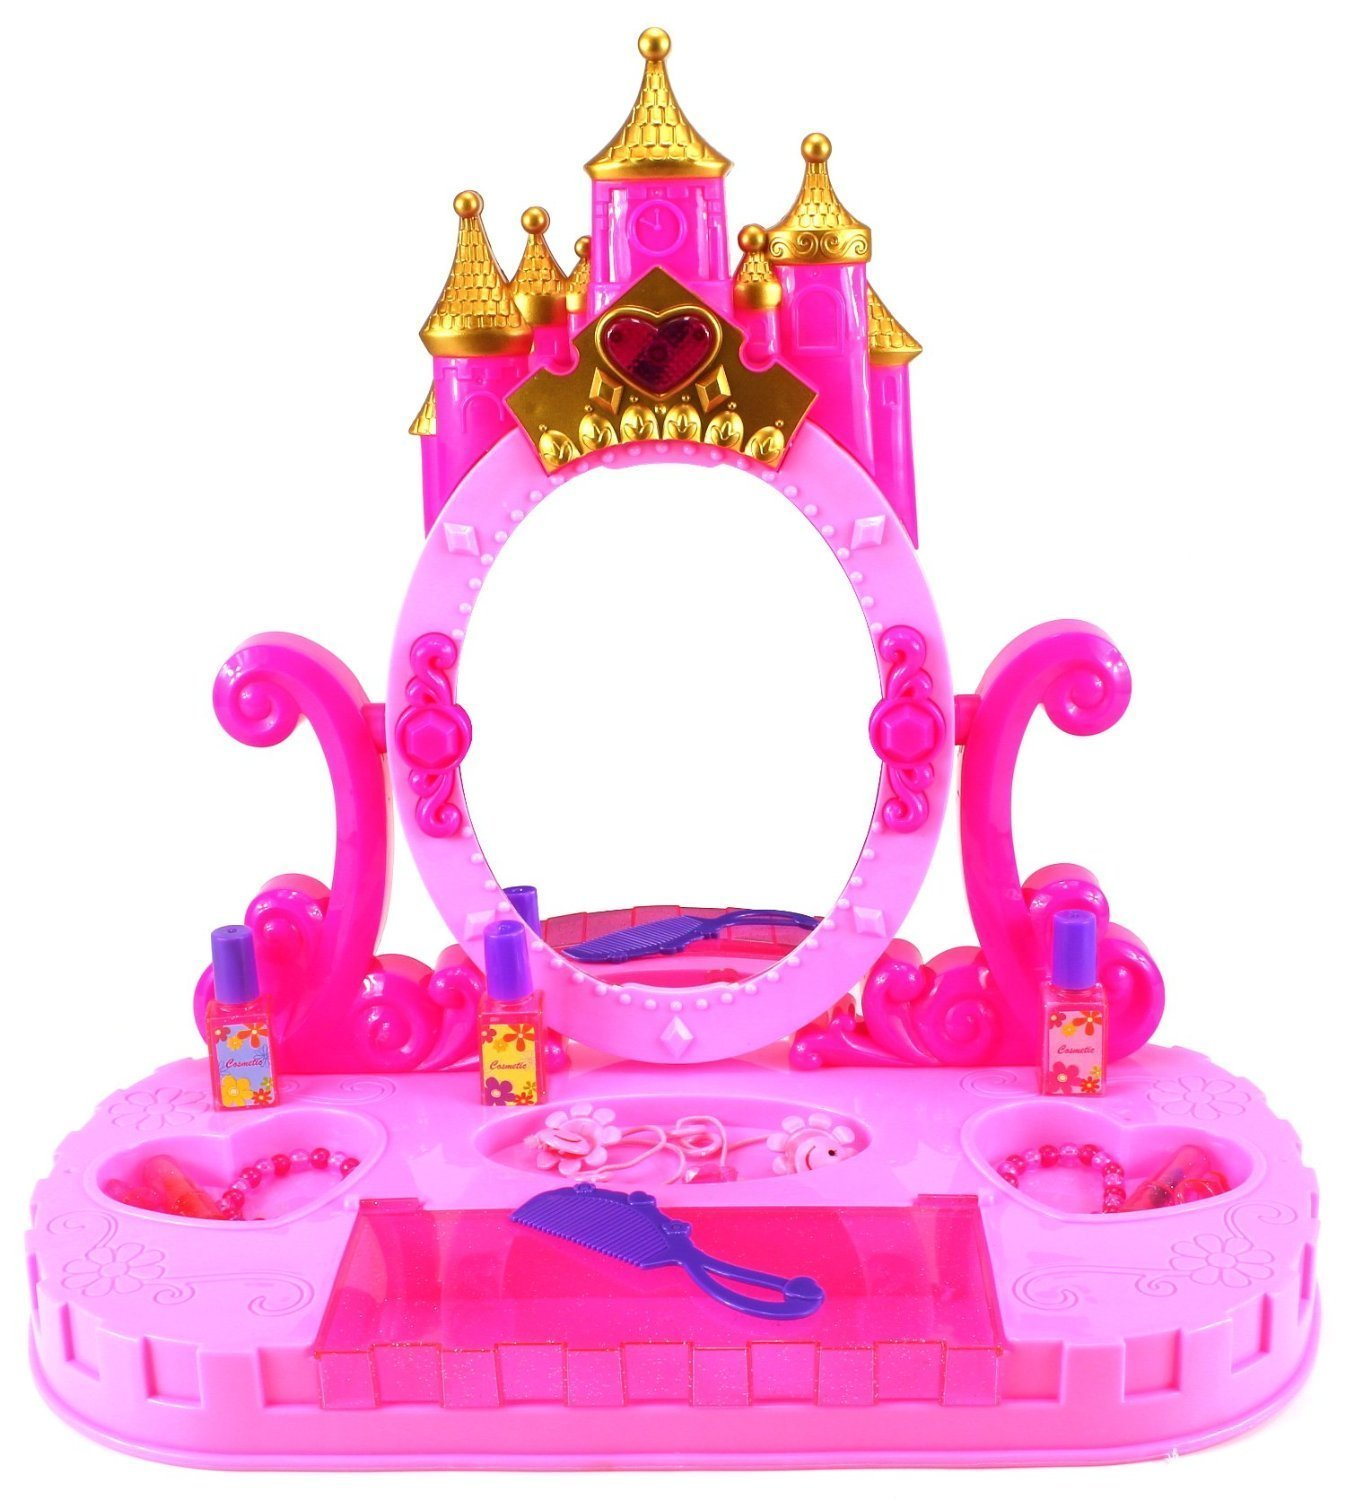 Buy Bohui Girls Vanity Castle Dressing Table Mirror With Lights Music U0026Toy  Make Up Accessories 3+ Years Online At Low Prices In India   Amazon.in